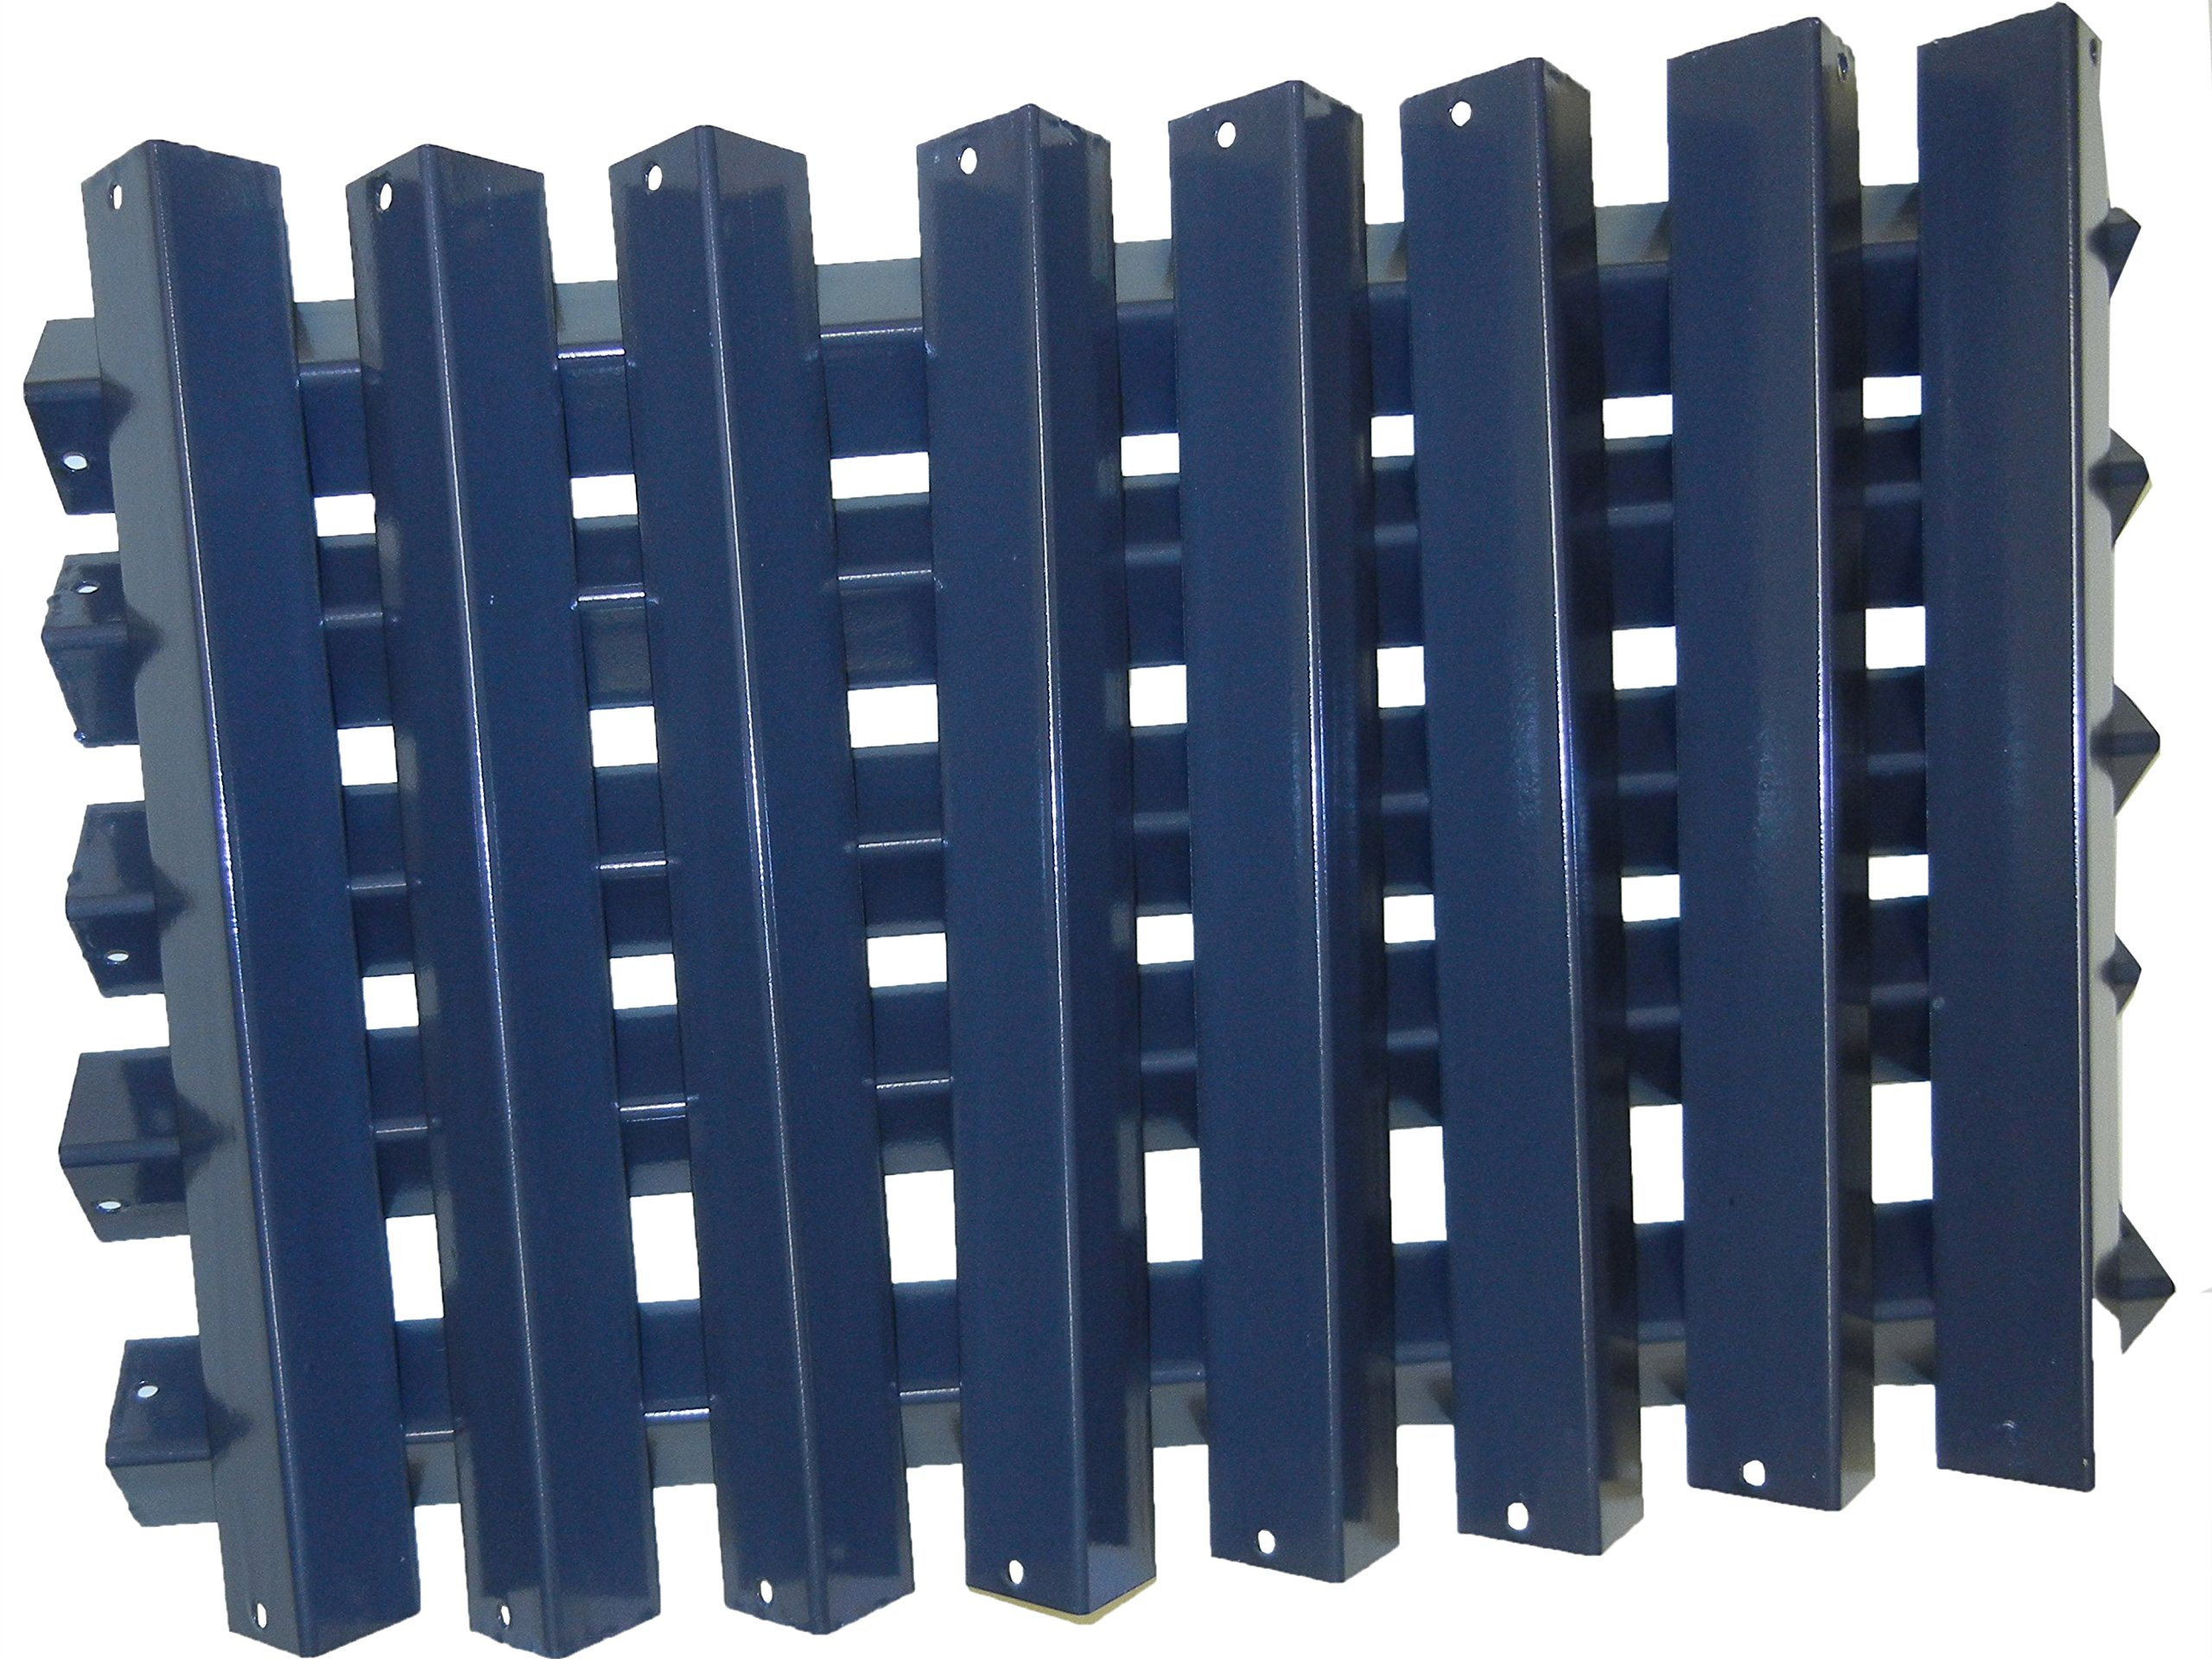 Music City Metals 99813 Porcelain Steel Heat Plate Replacement for Select Weber Gas Grill Models,1 pack of 13 plates